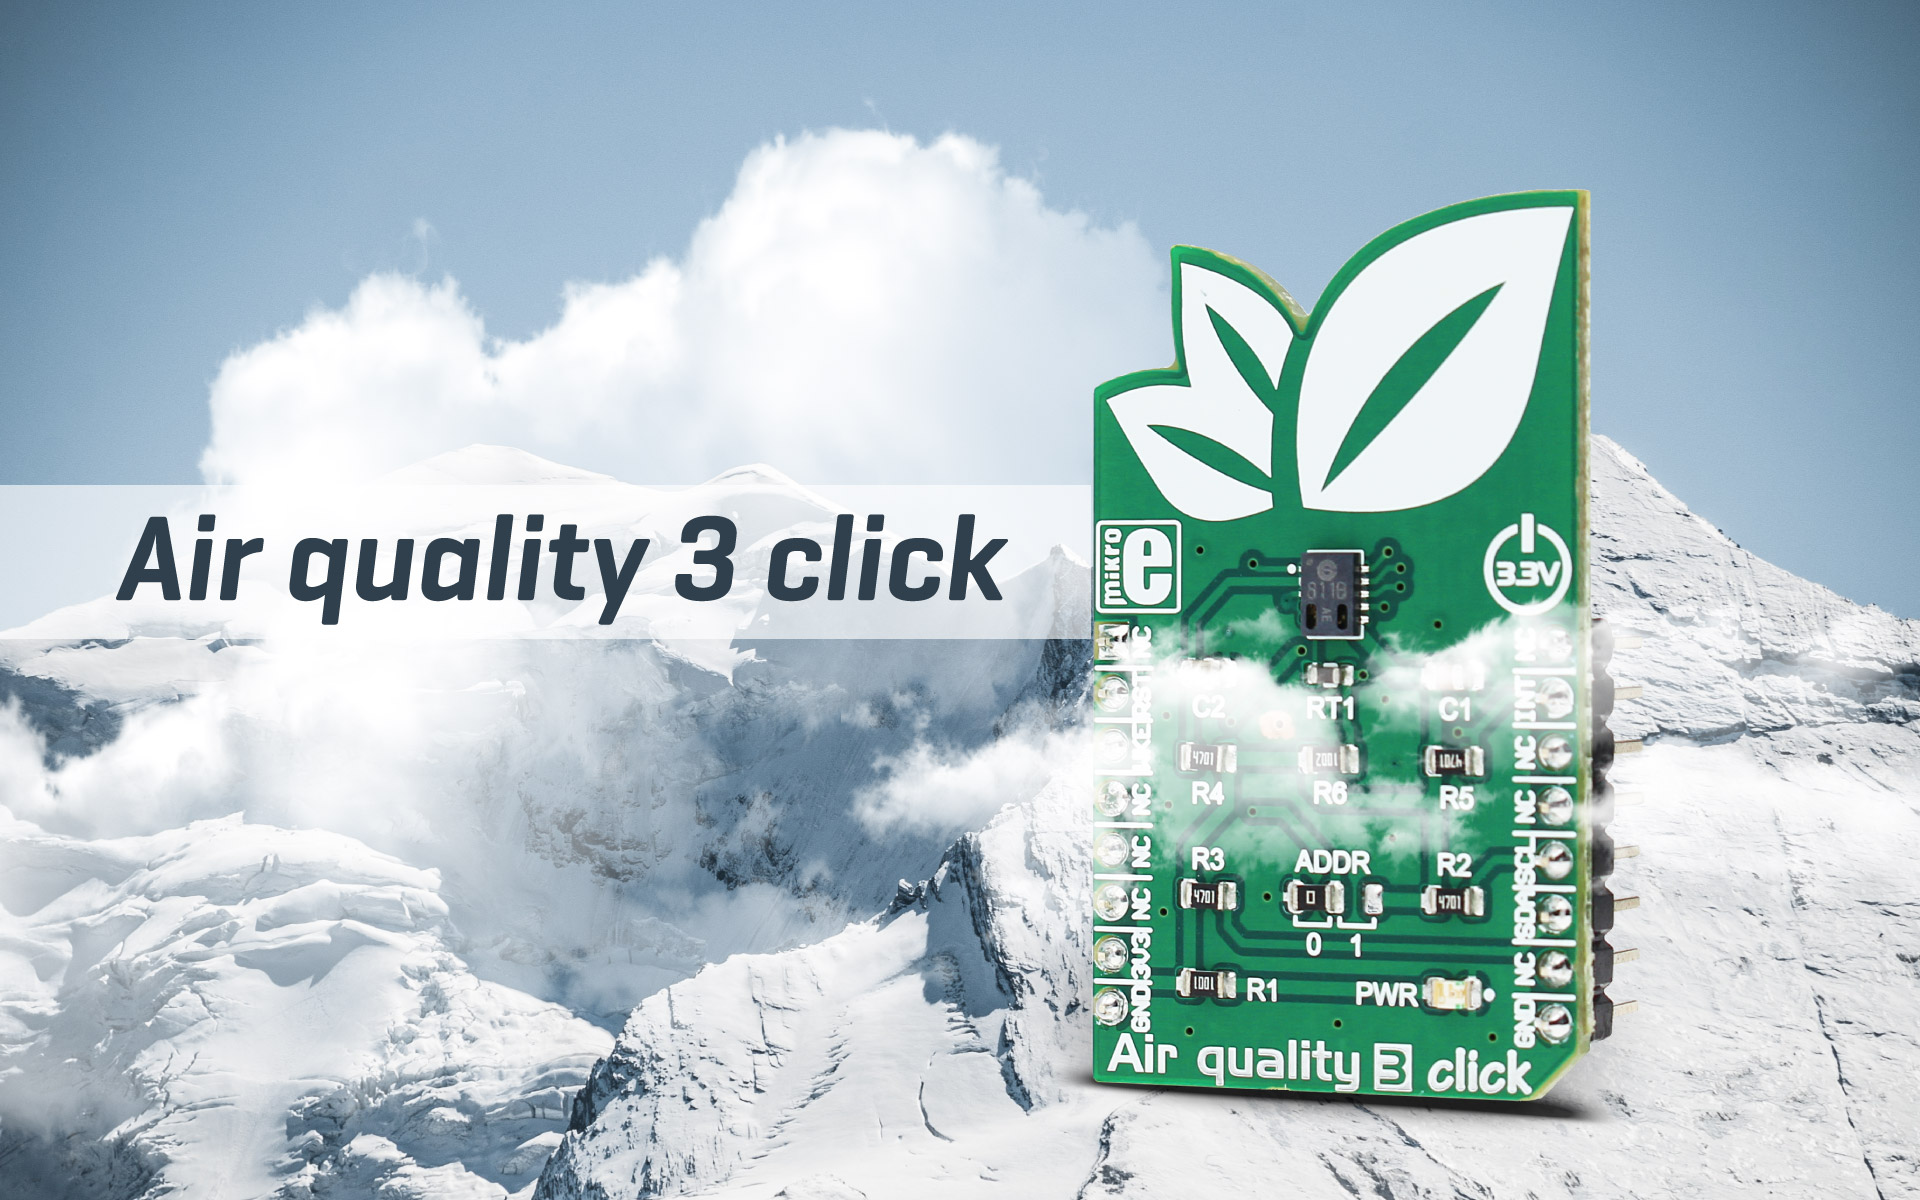 Air quality 3 click - precise indoor air quality measurement